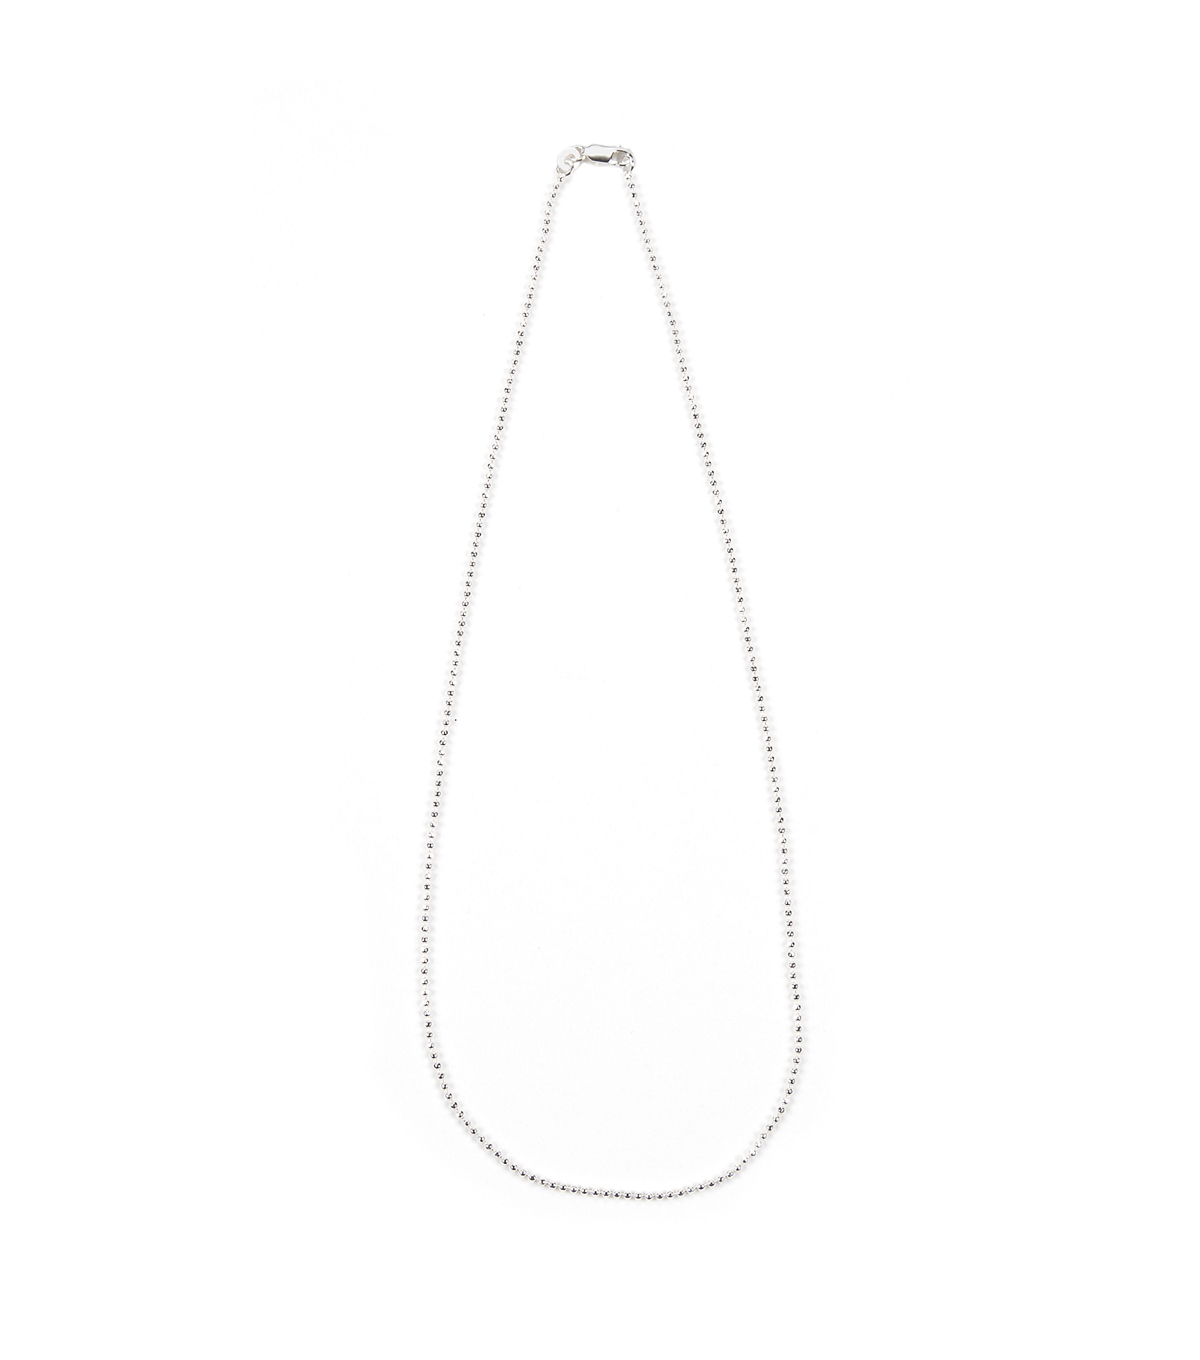 18 inch Sterling Silver Plated Ball Chain Style Necklace, 1.2mm chain